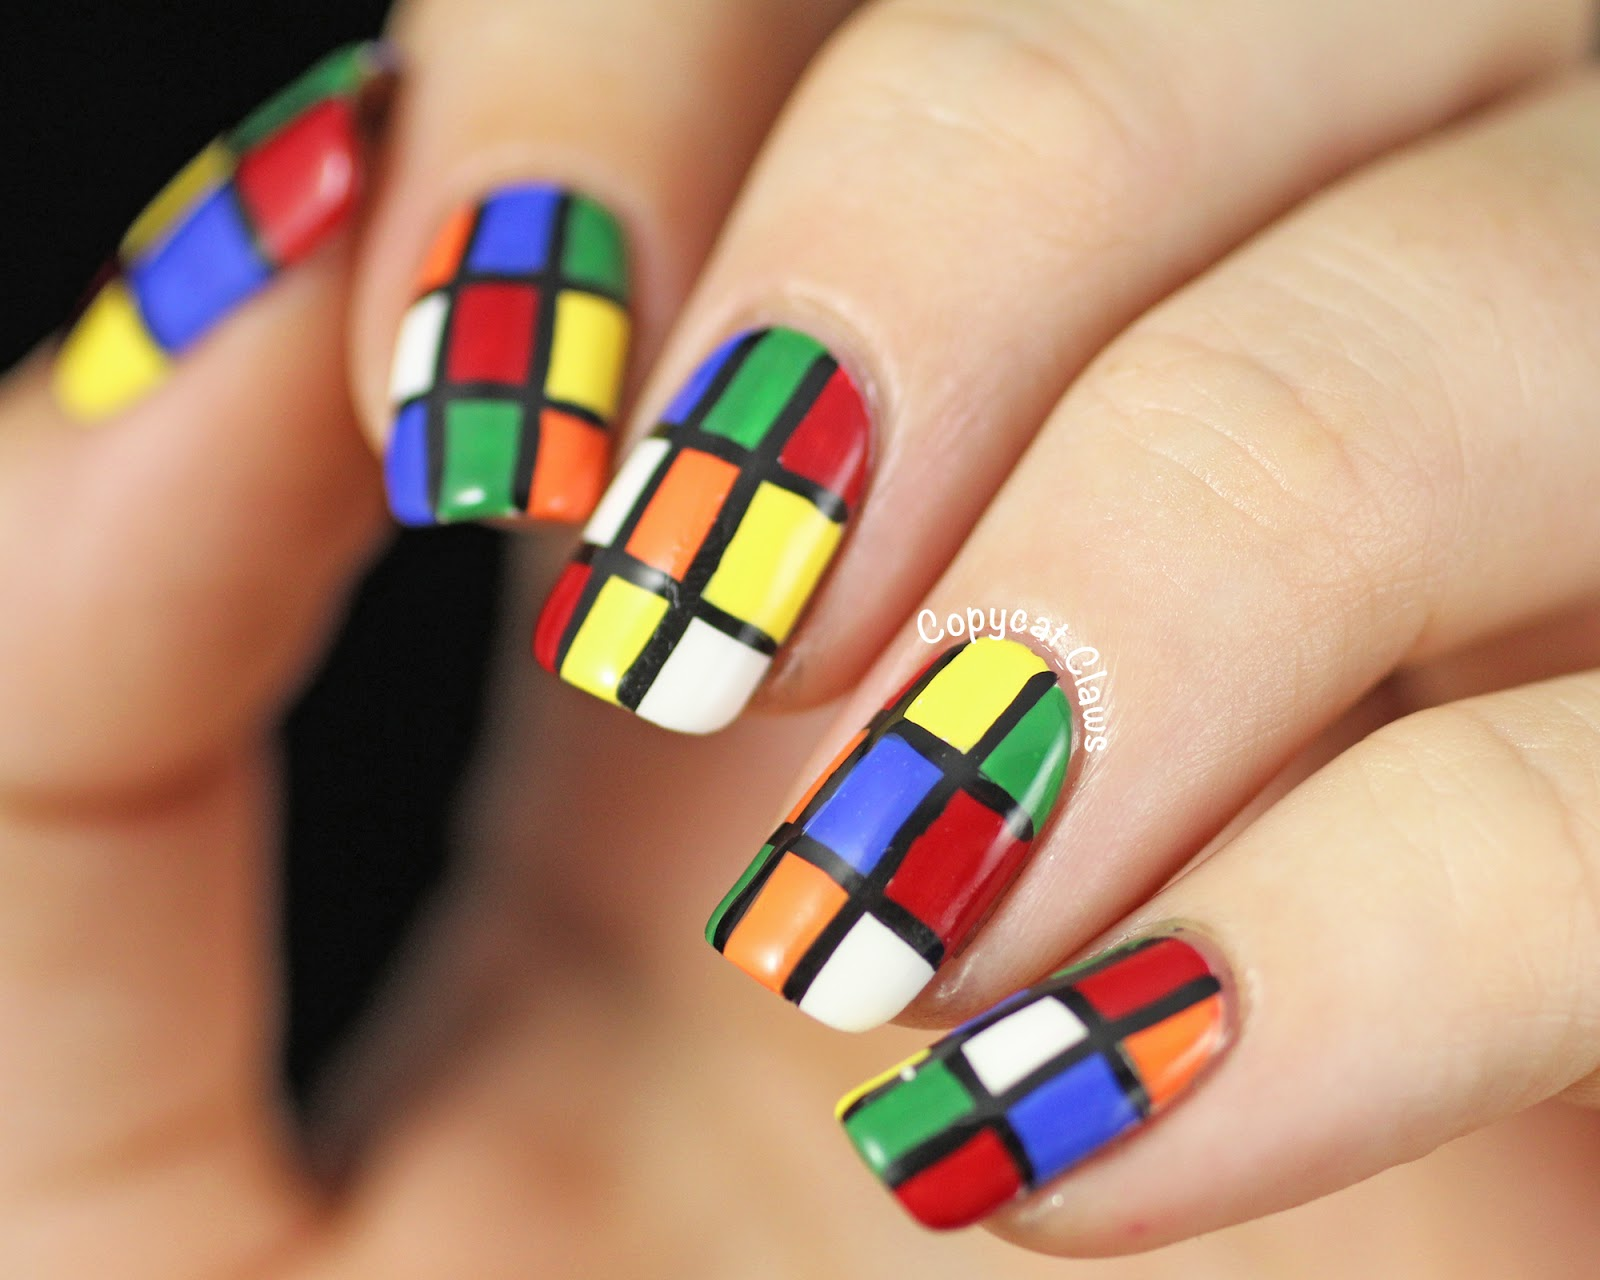 Copycat Claws 31dc2014 Day 16 Rubiks Cube Nail Art